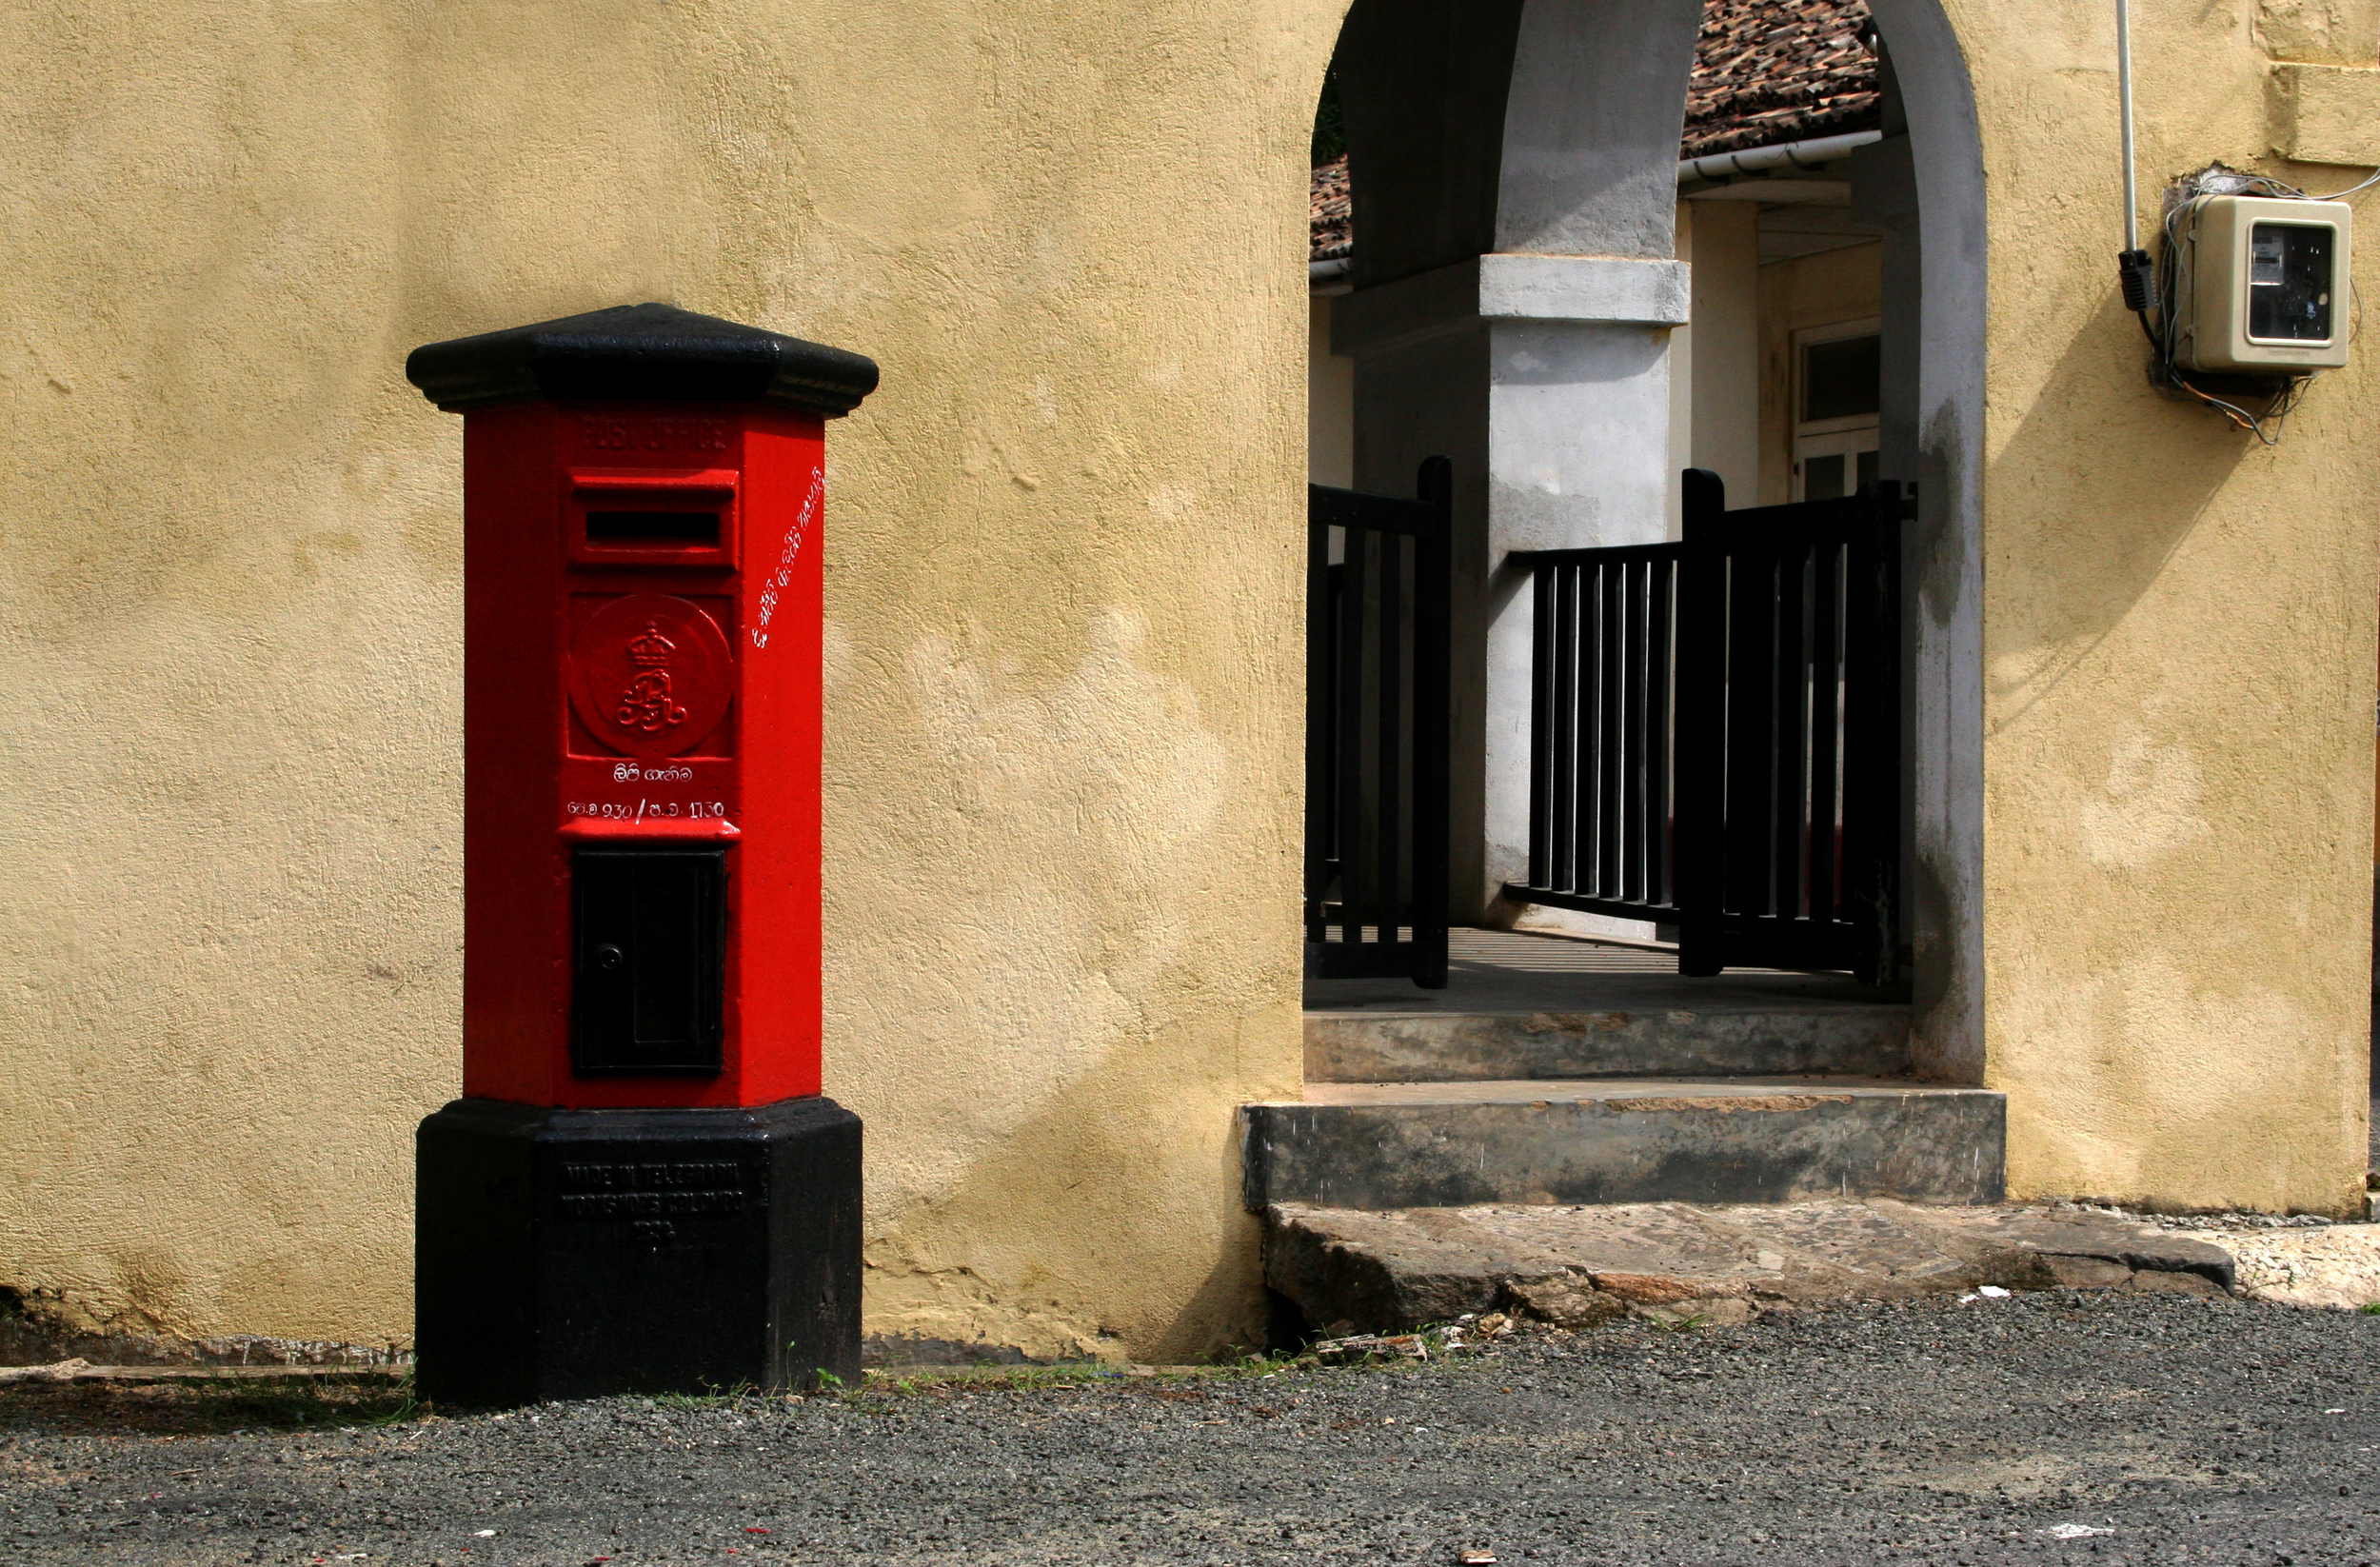 invite-to-paradise-sri-lanka-holiday-honeymoon-vacation-specialists-galle-fort-fortress-city-red-post-box-street.jpg